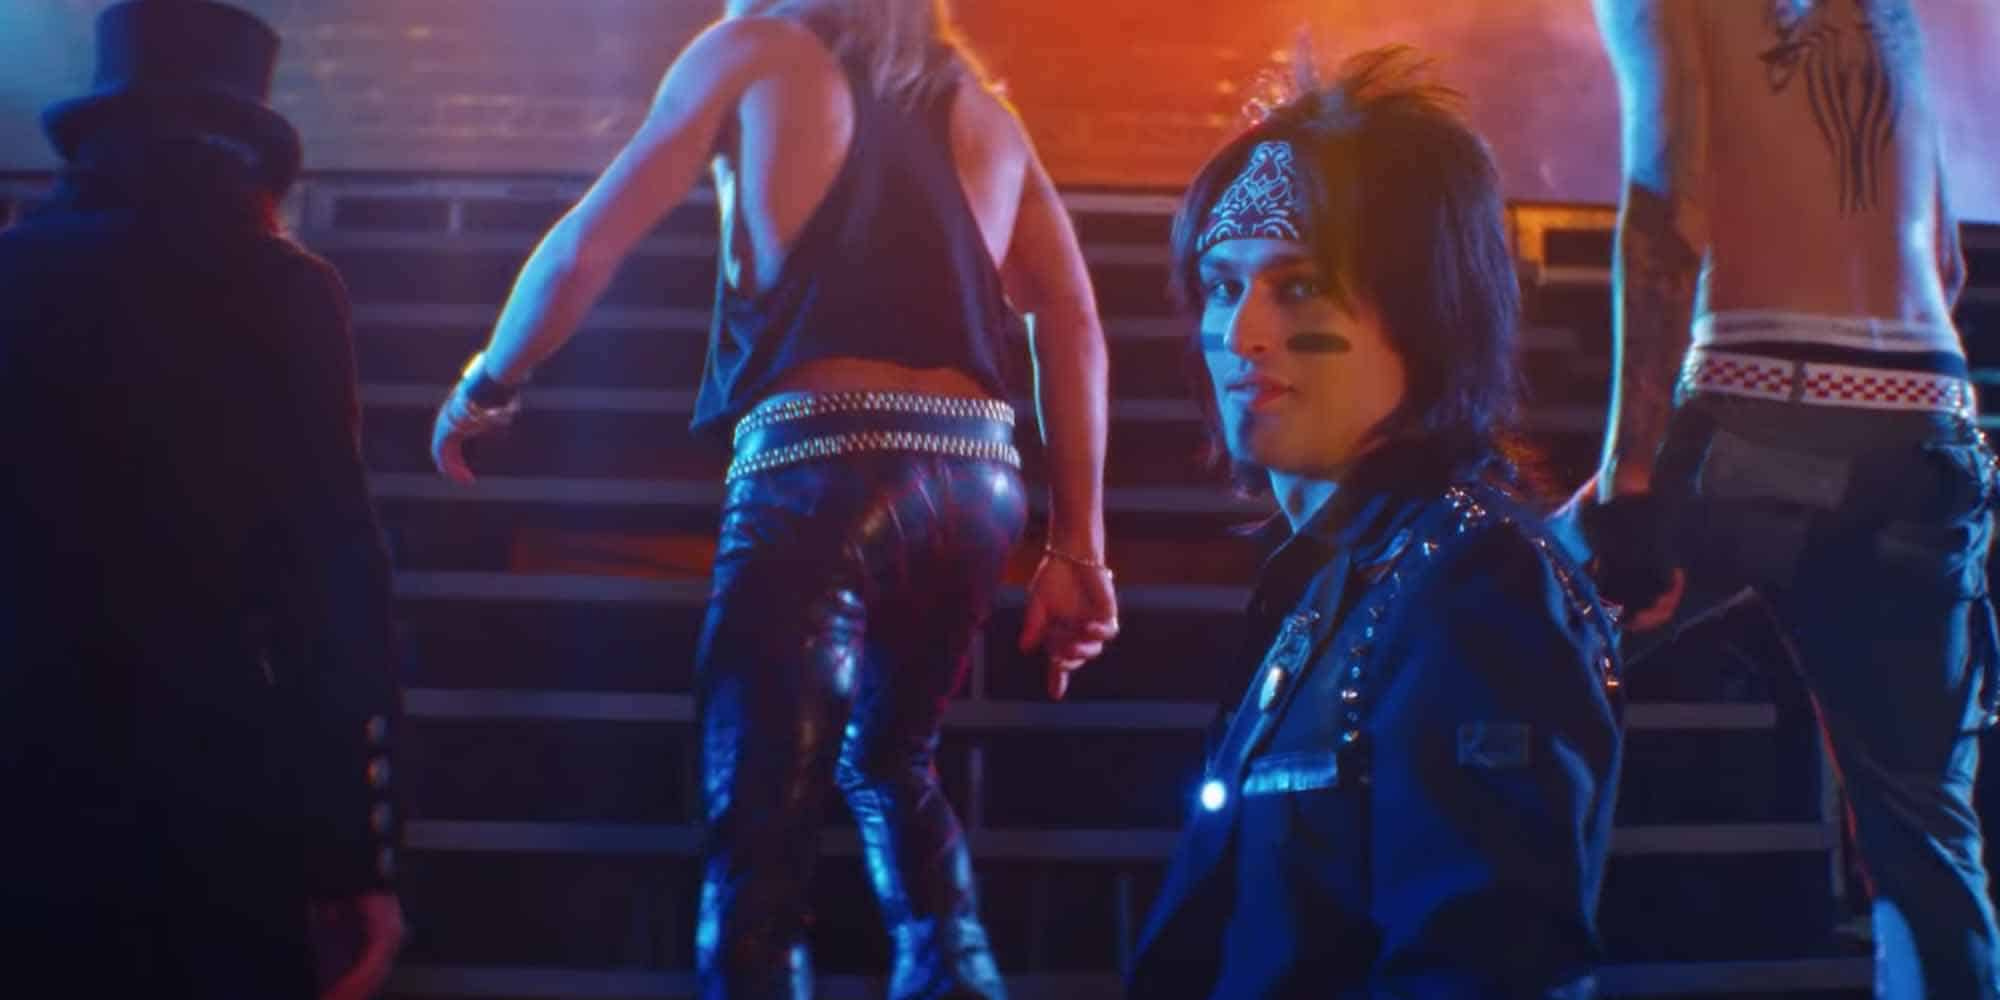 11 Important Facts Missing From Mötley Crüe's Netflix Movie